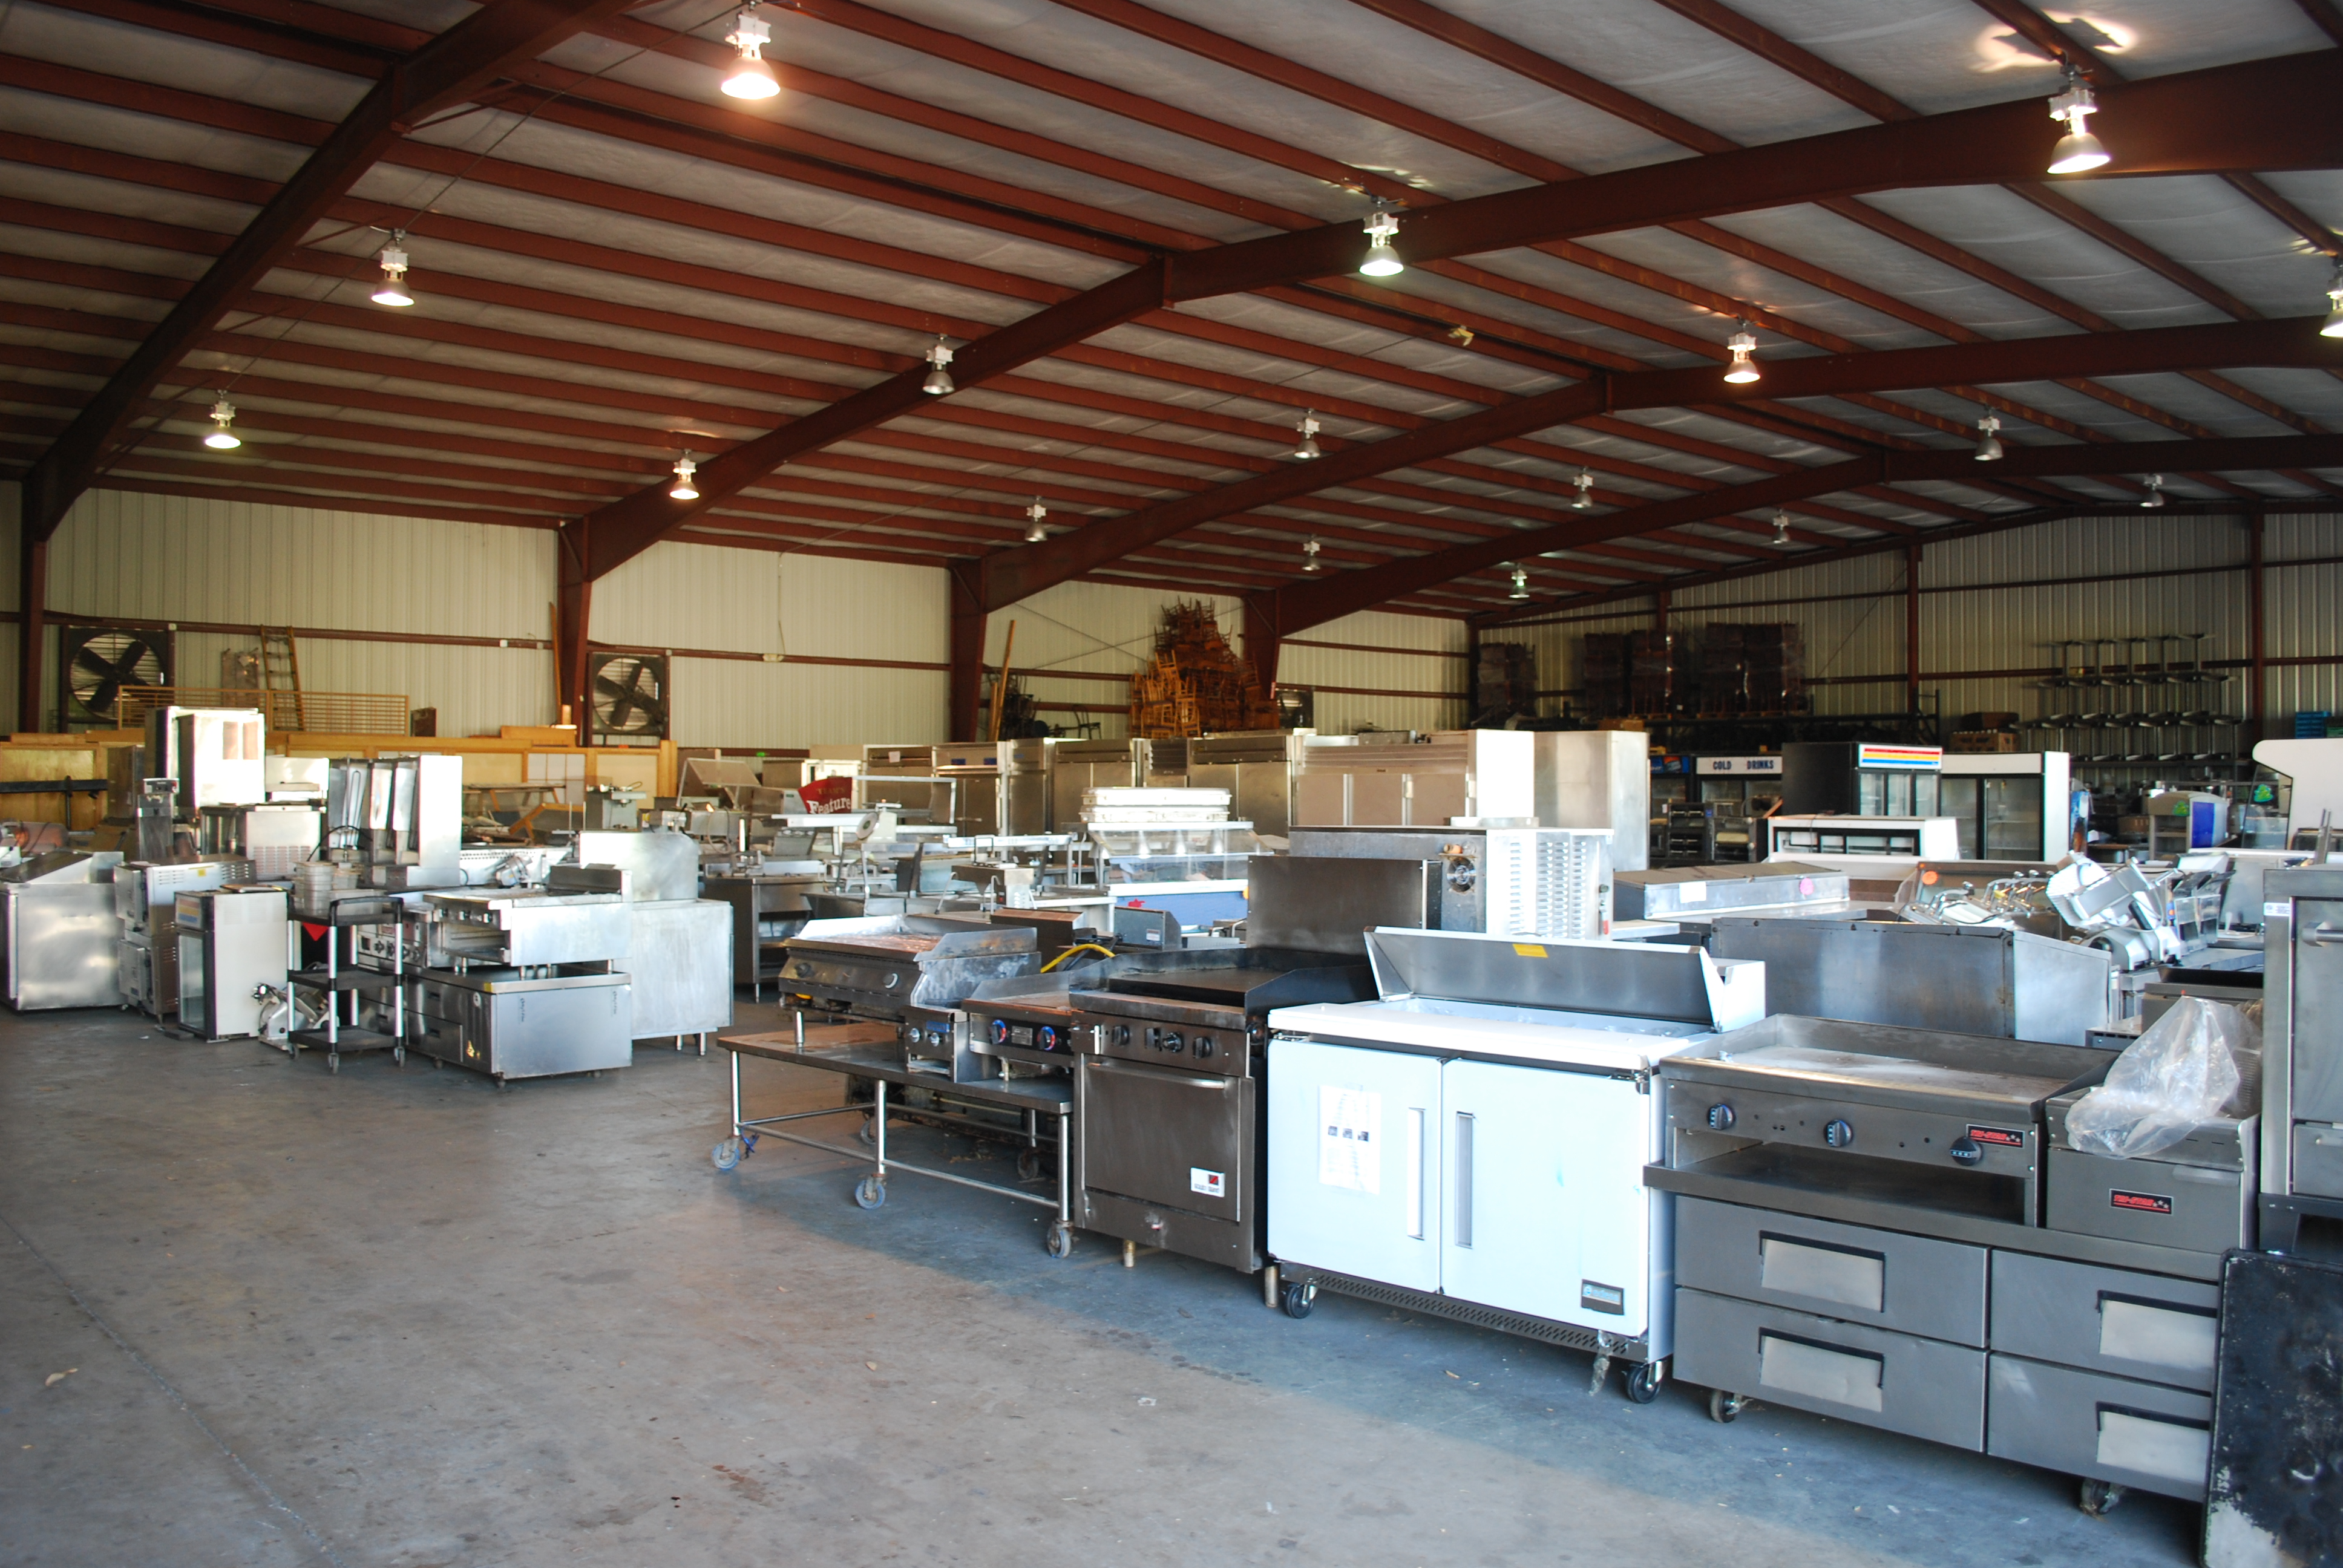 used commercial kitchen equipment buyers floor tile patterns we want your restaurant entire restaurants